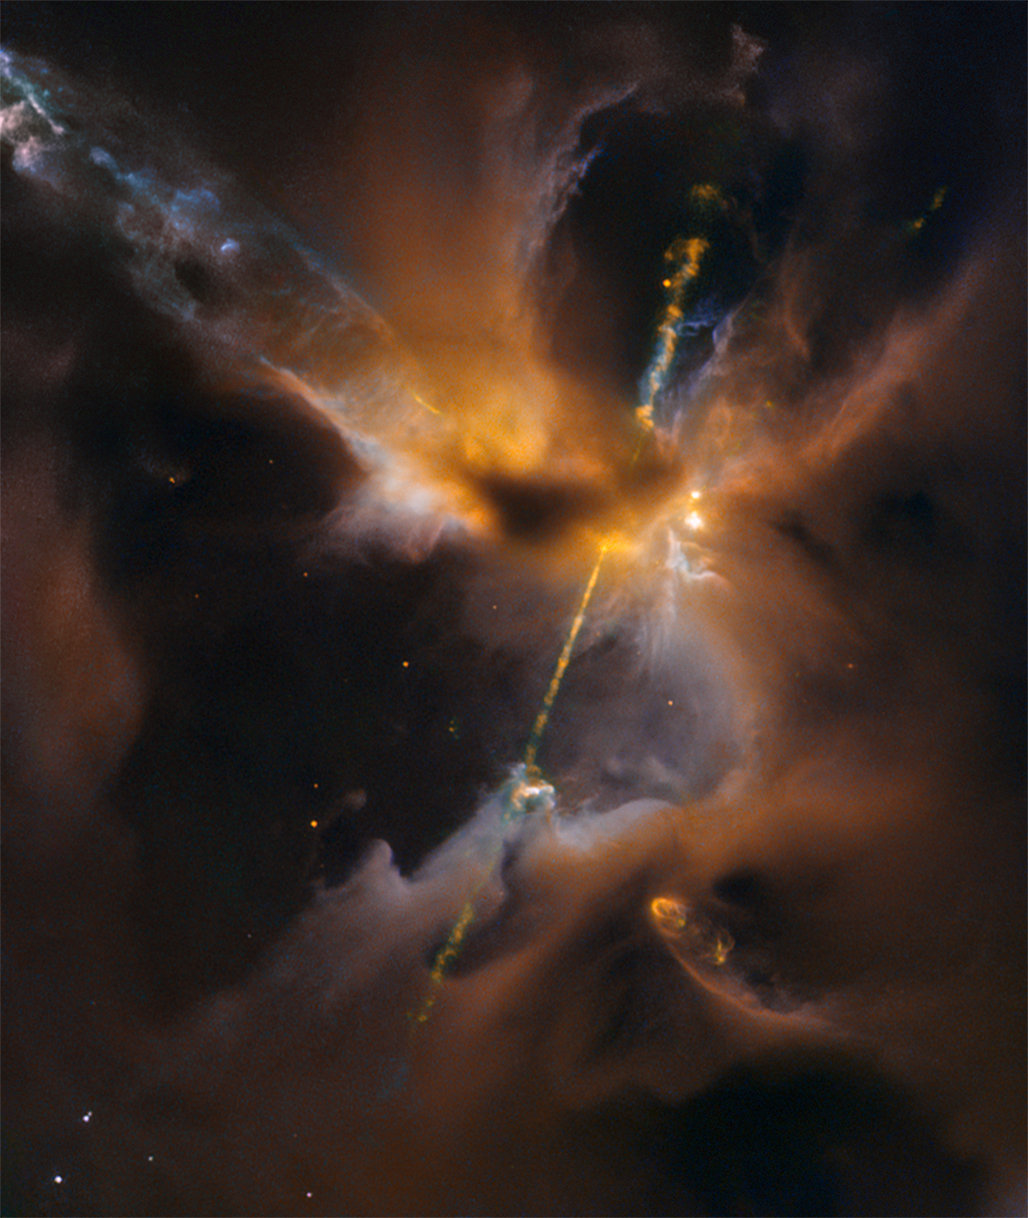 Image Credit: NASA, ESA, Hubble Heritage (STScI / AURA) / Hubble-Europe Collaboration  Acknowledgment: D. Padgett (GSFC), T. Megeath (University of Toledo), B. Reipurth (University of Hawaii)